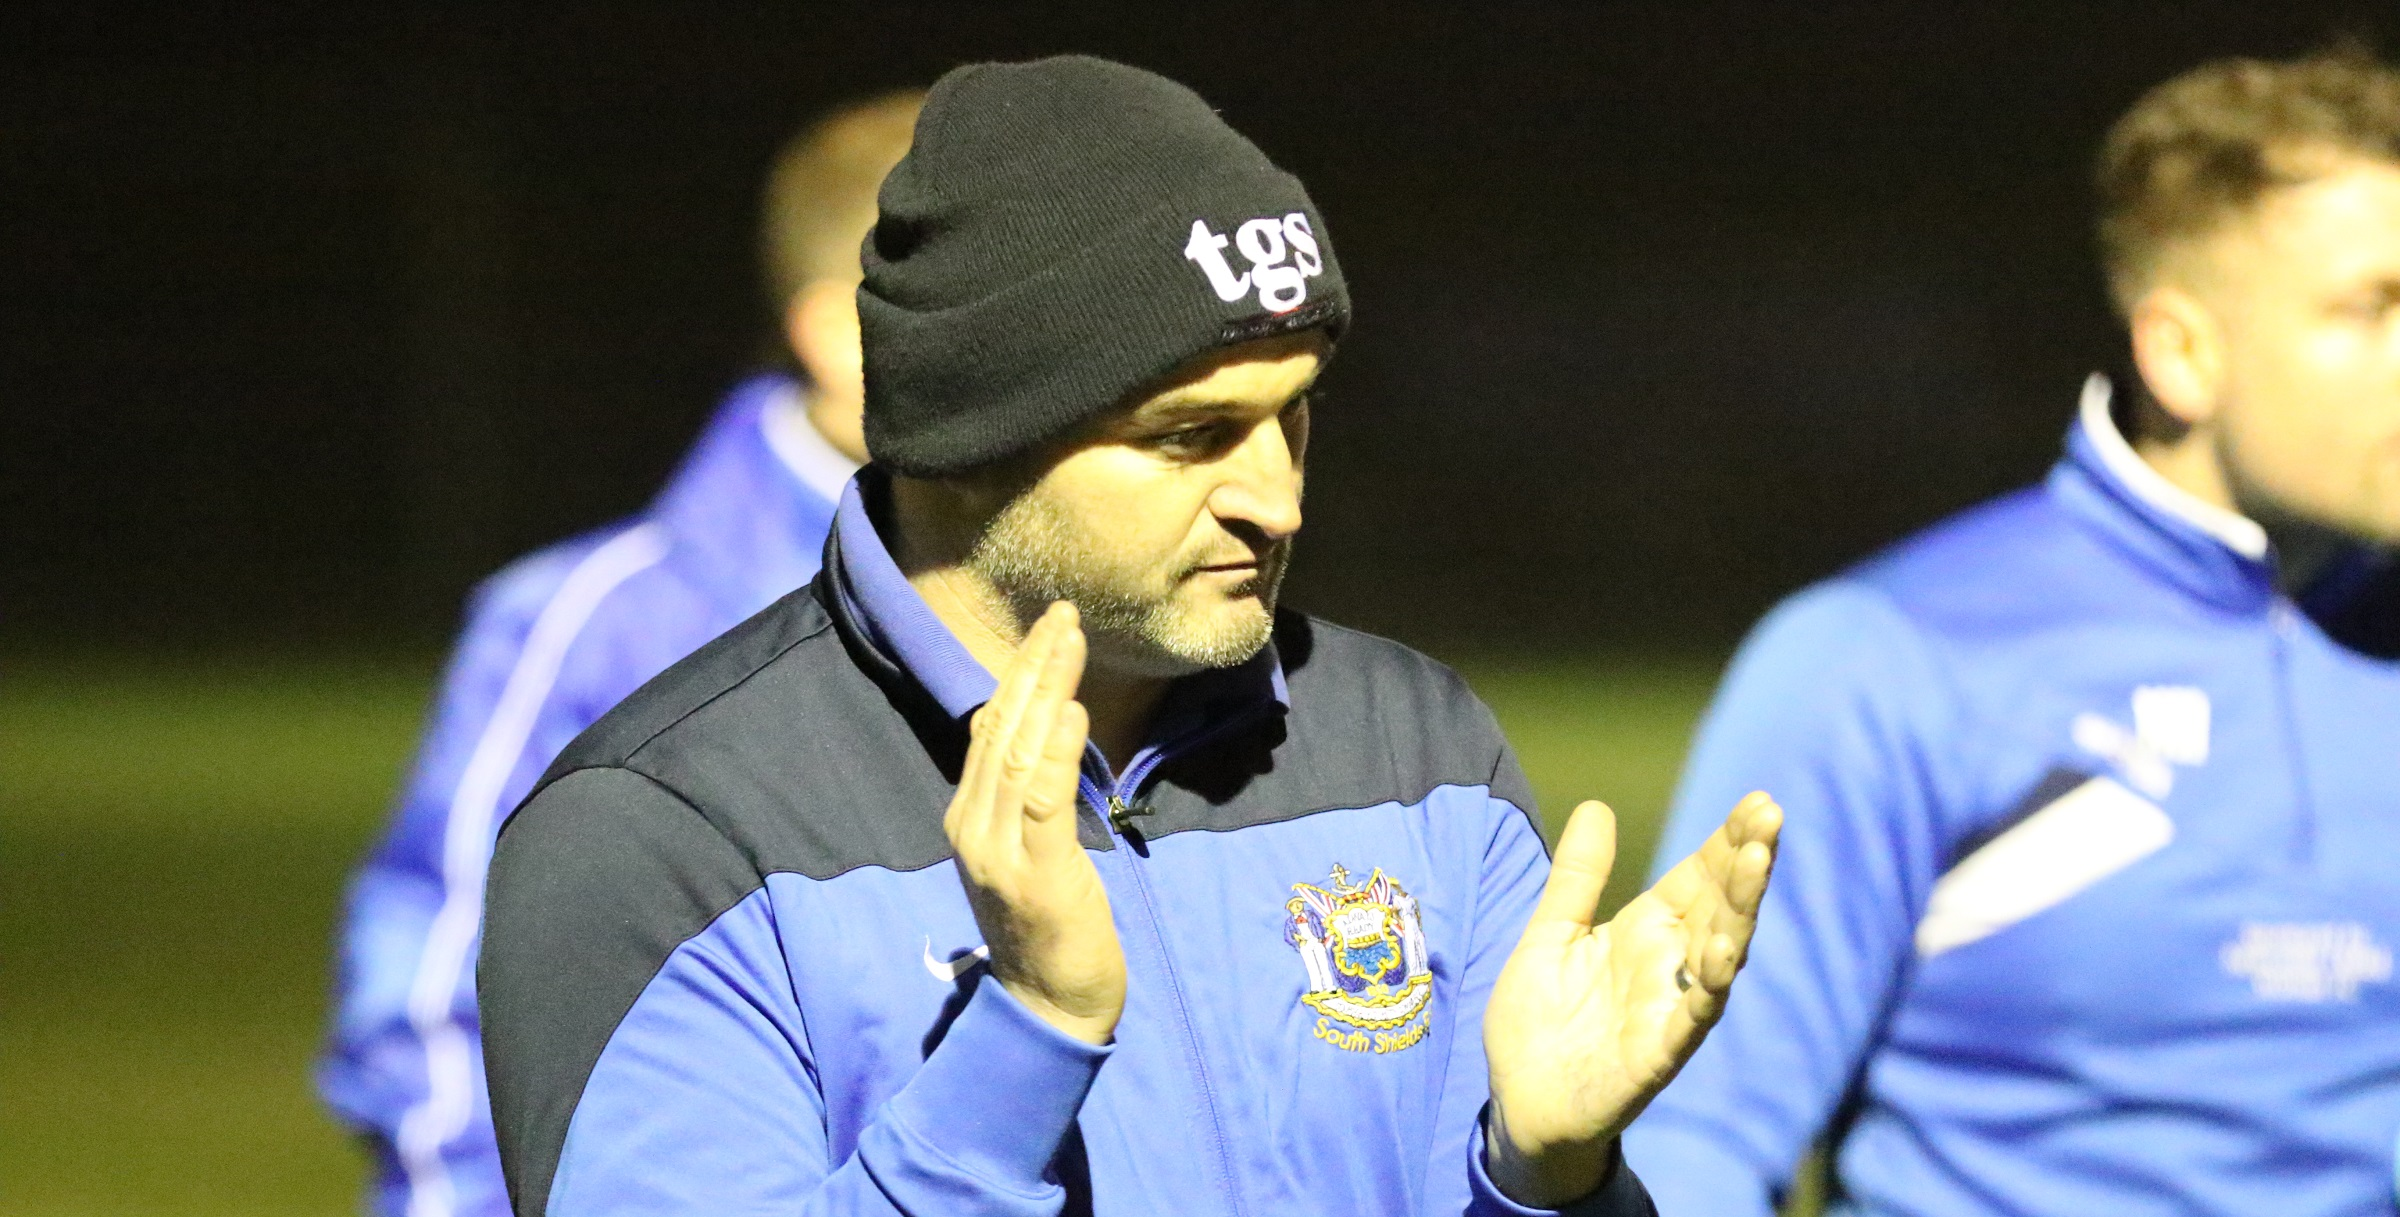 VIDEO: King proud of Shields players after cruel Vase exit